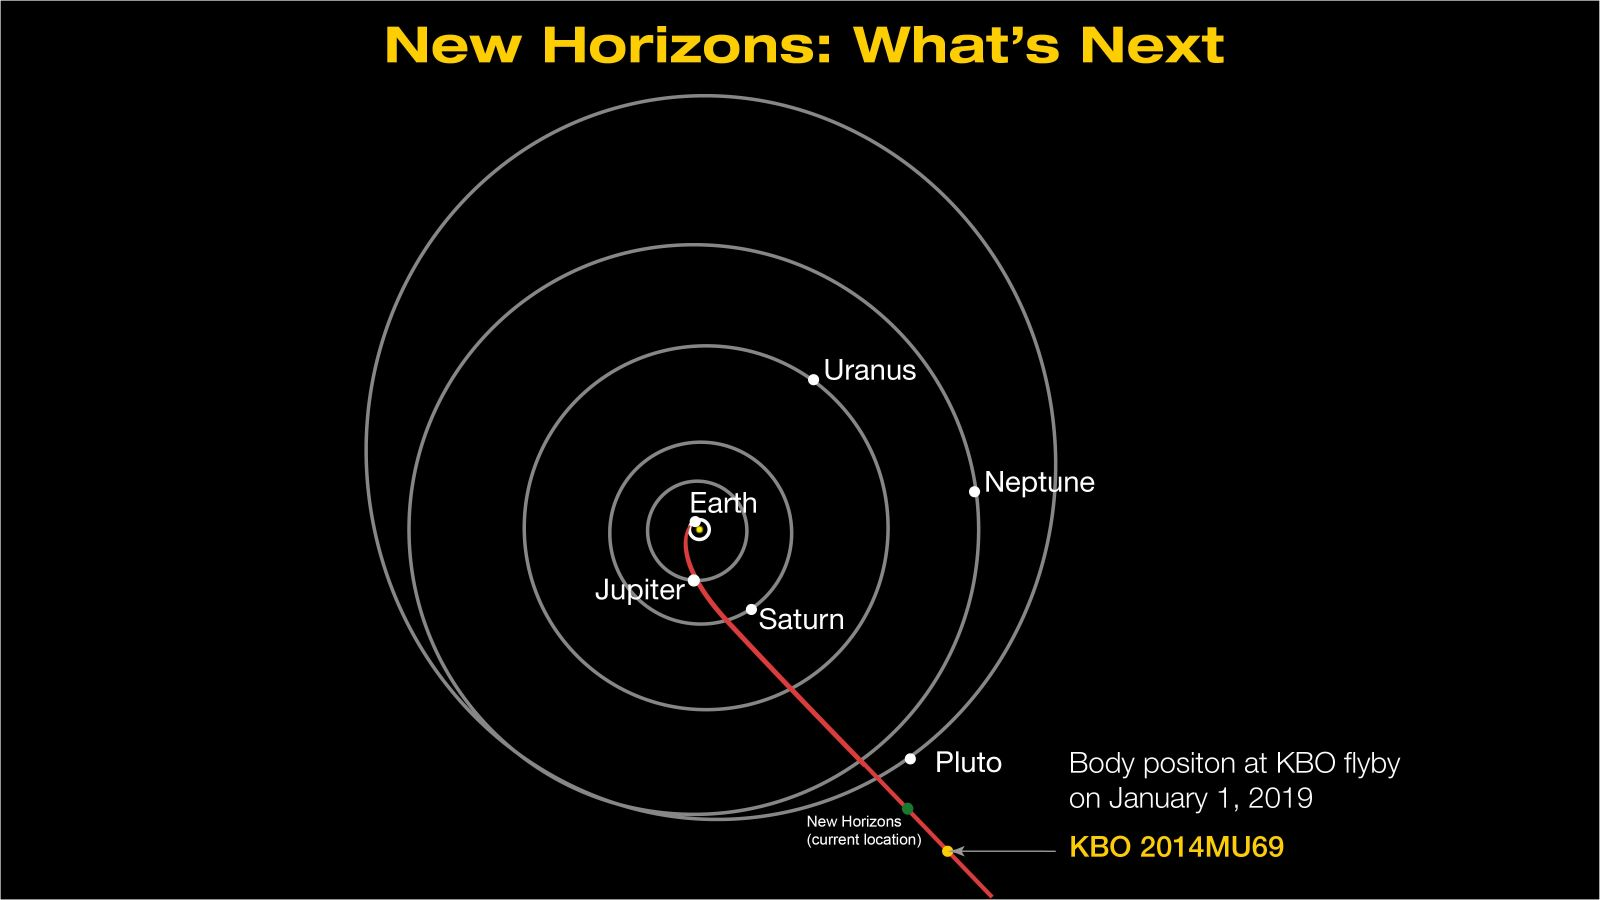 New Horizons path to MU69